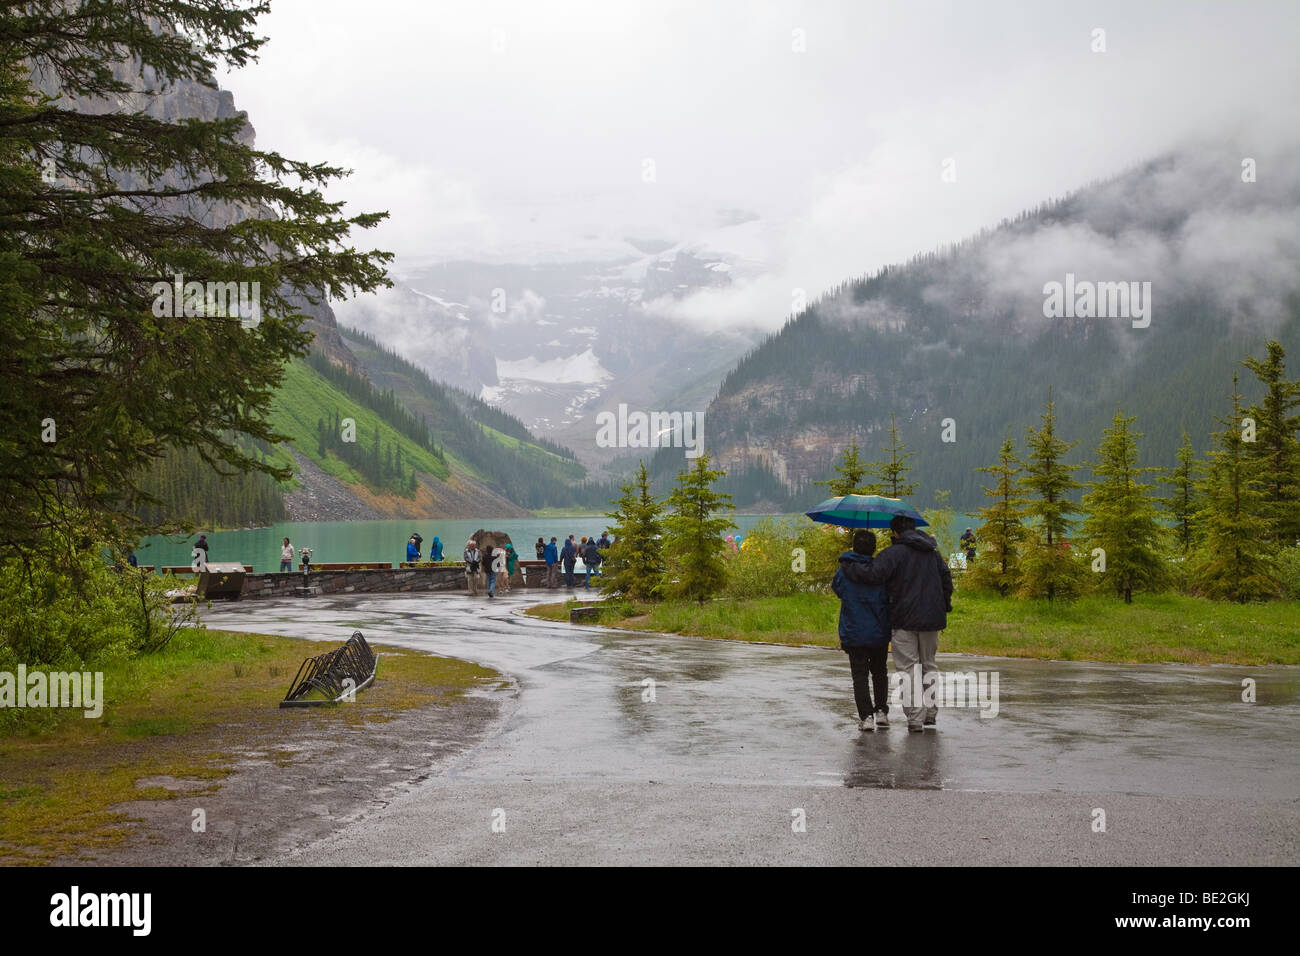 A misty rainy day at Lake Louise in Banff National Park in Alberta,Canada,North America - Stock Image